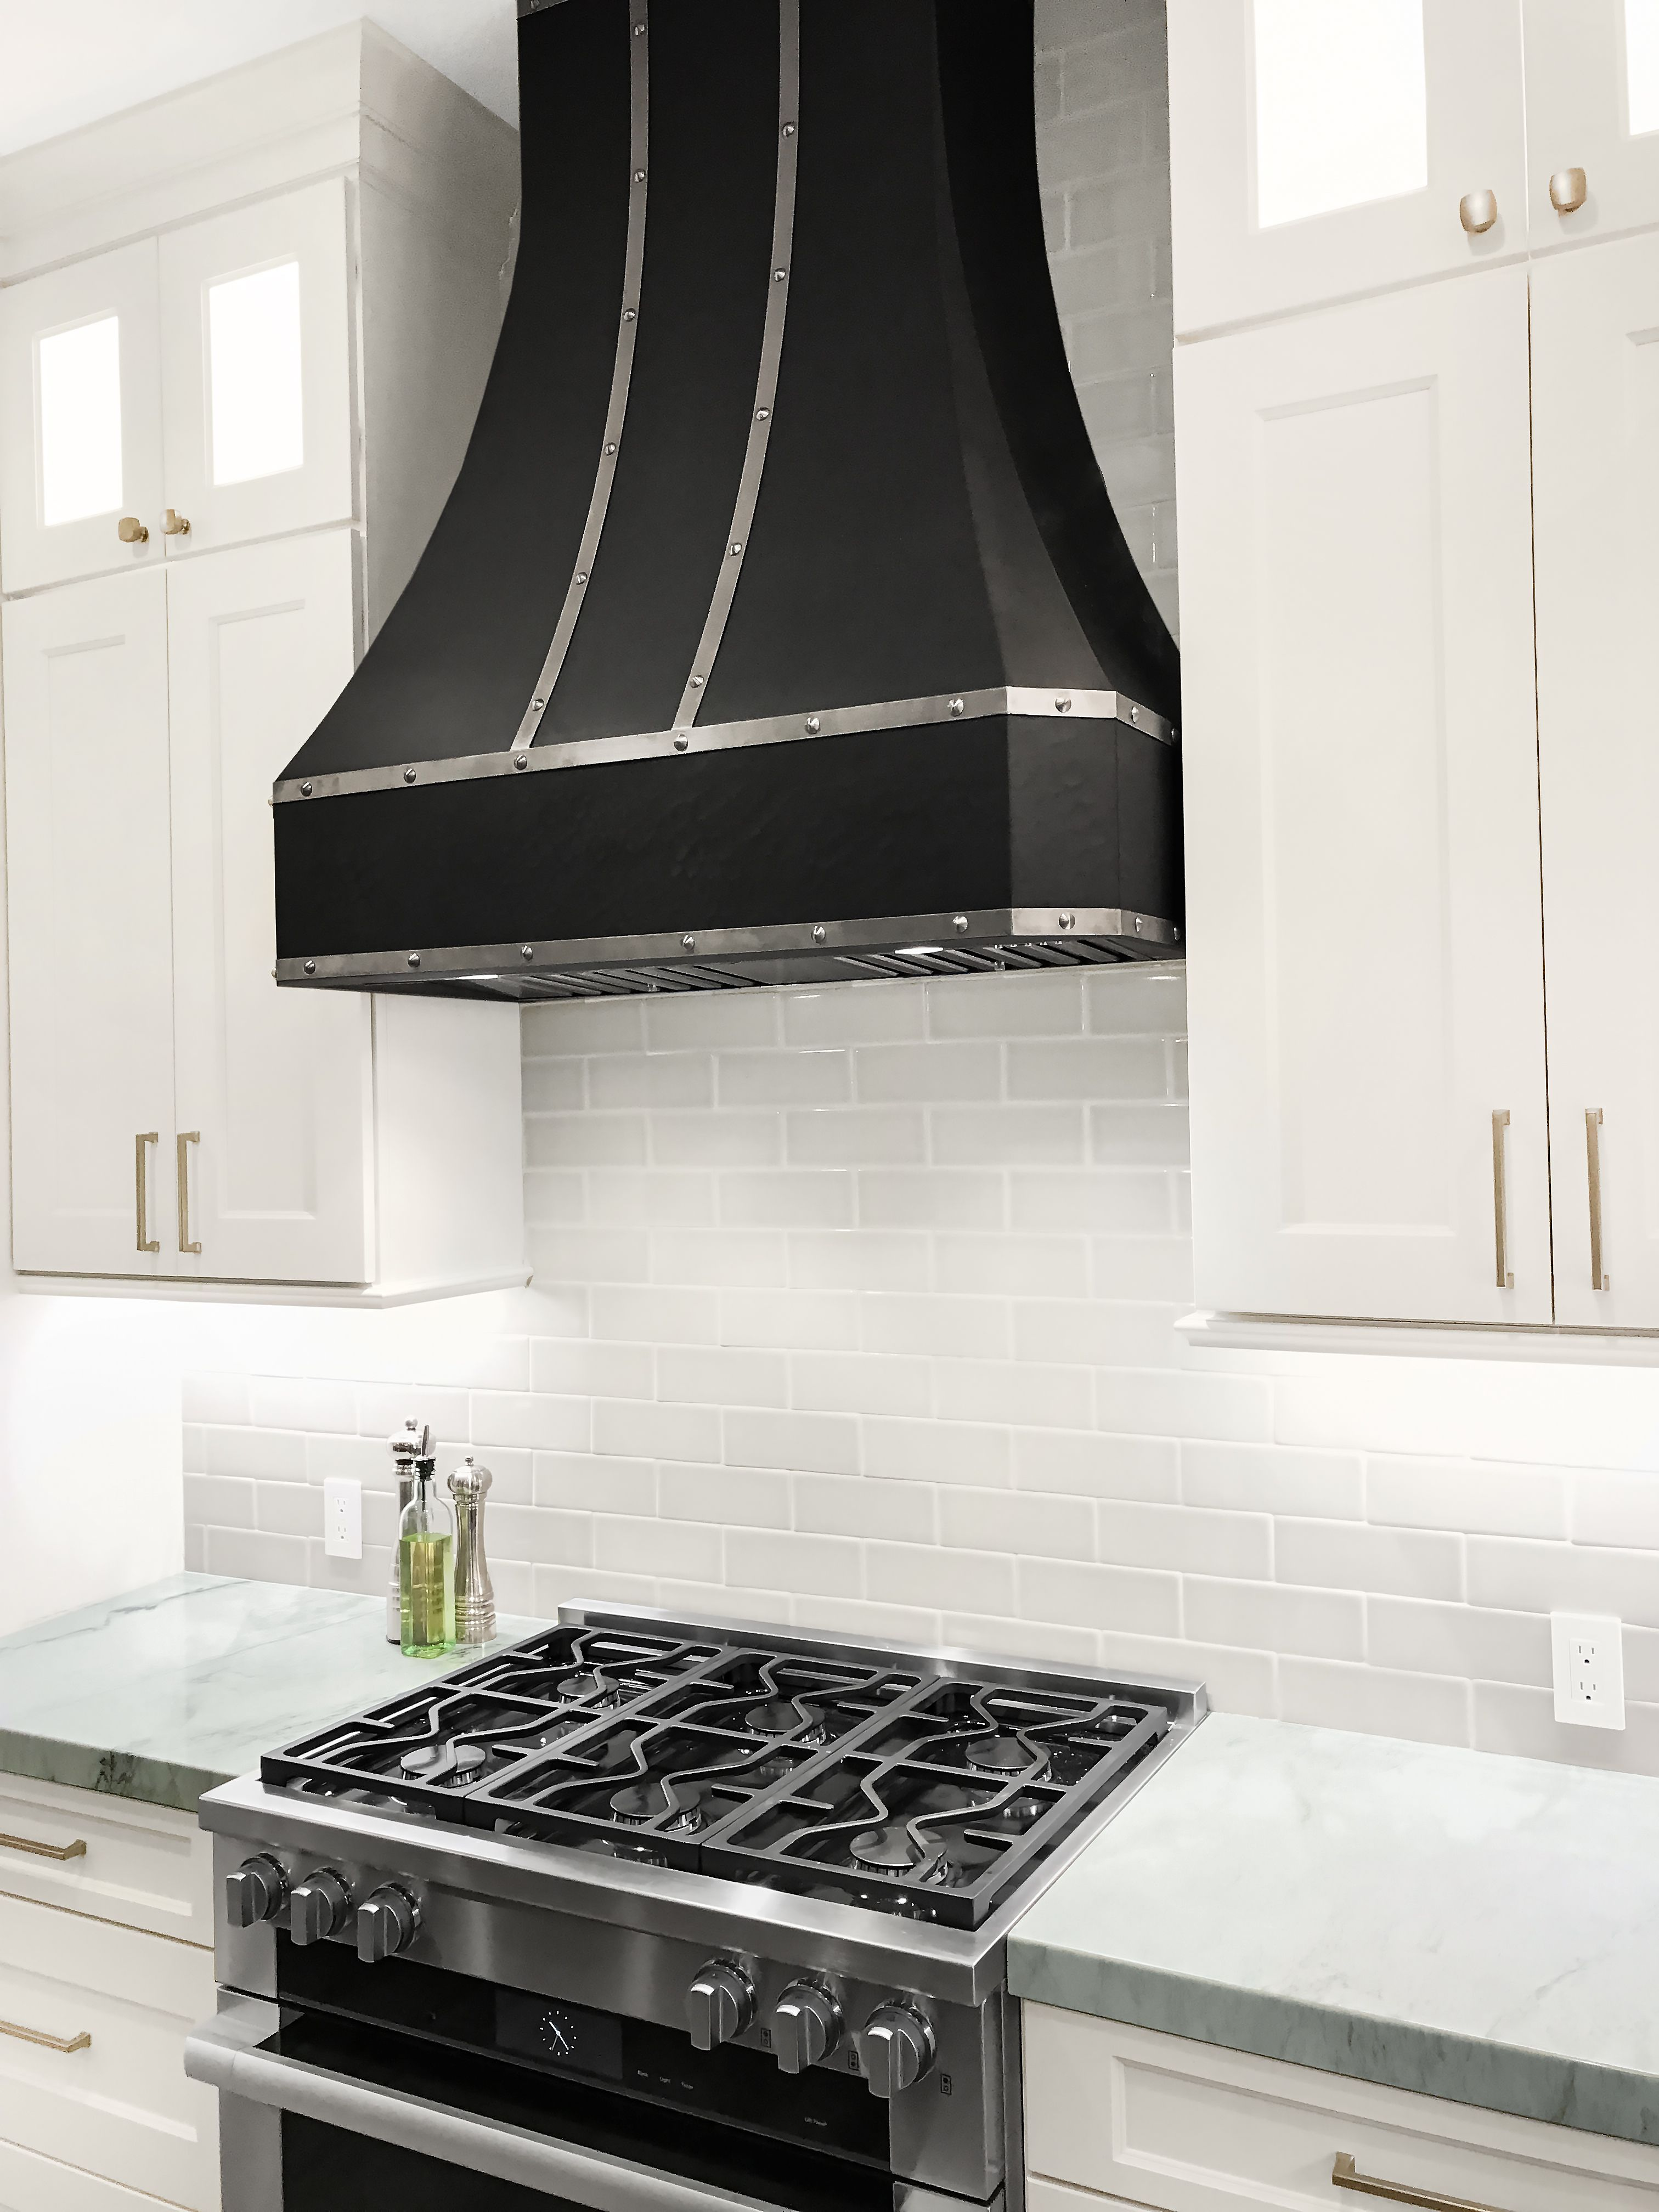 This Dream Kitchen Bring Modern Appliances And Transitional Items To Create A Timeless Design We Mixed Qua Design My Kitchen Kitchen Soffit Beautiful Kitchens